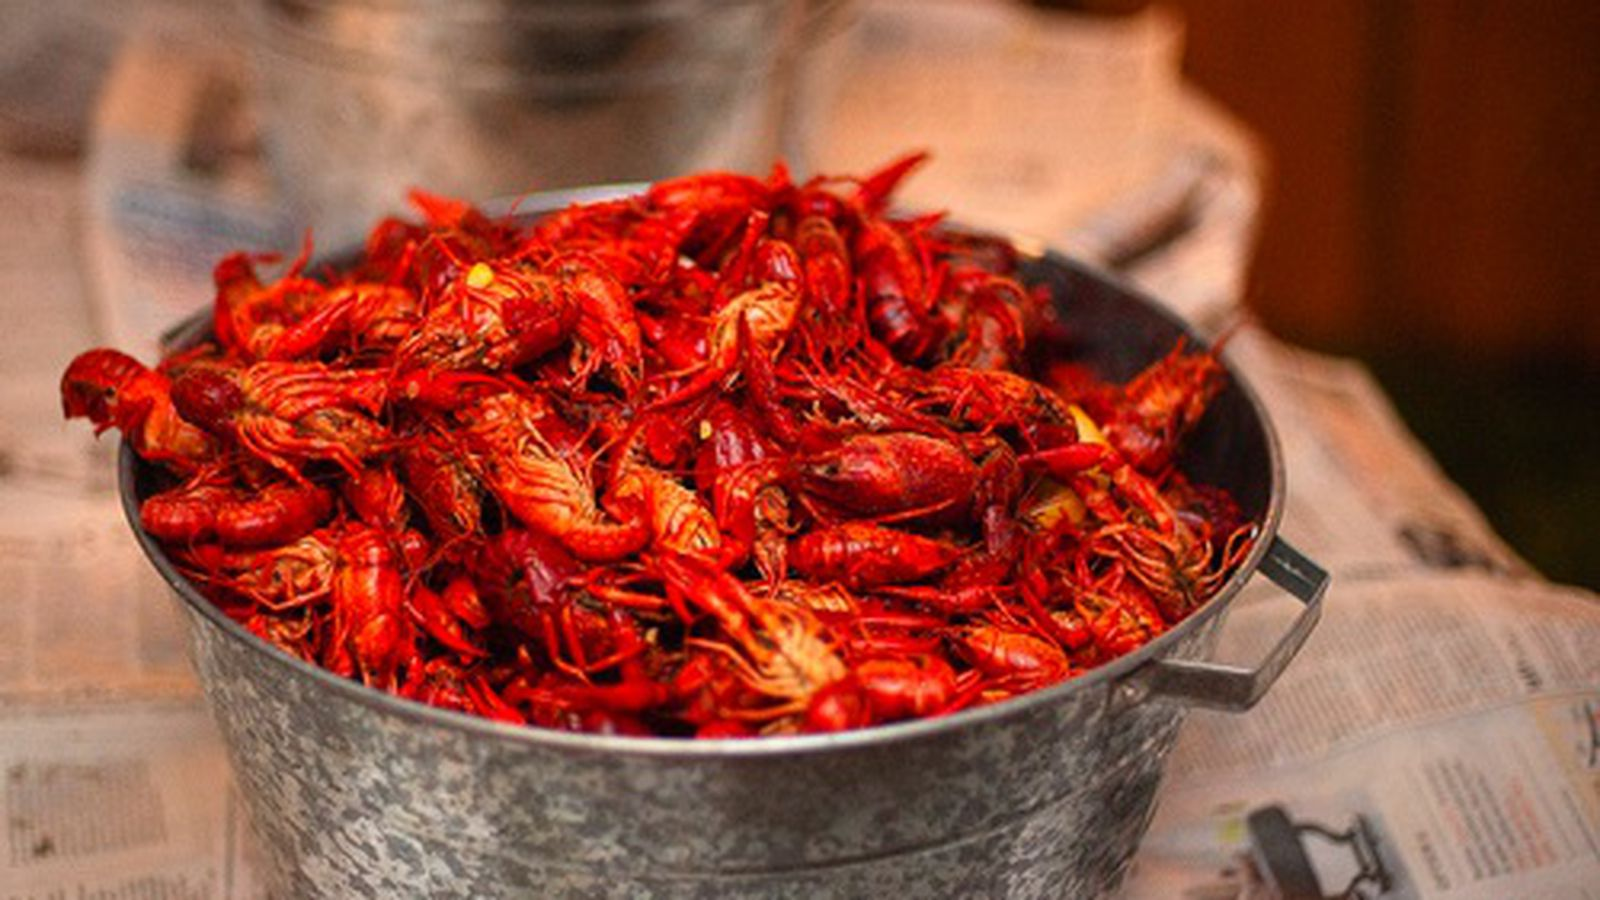 Boiled Seafood Restaurants In New Orleans